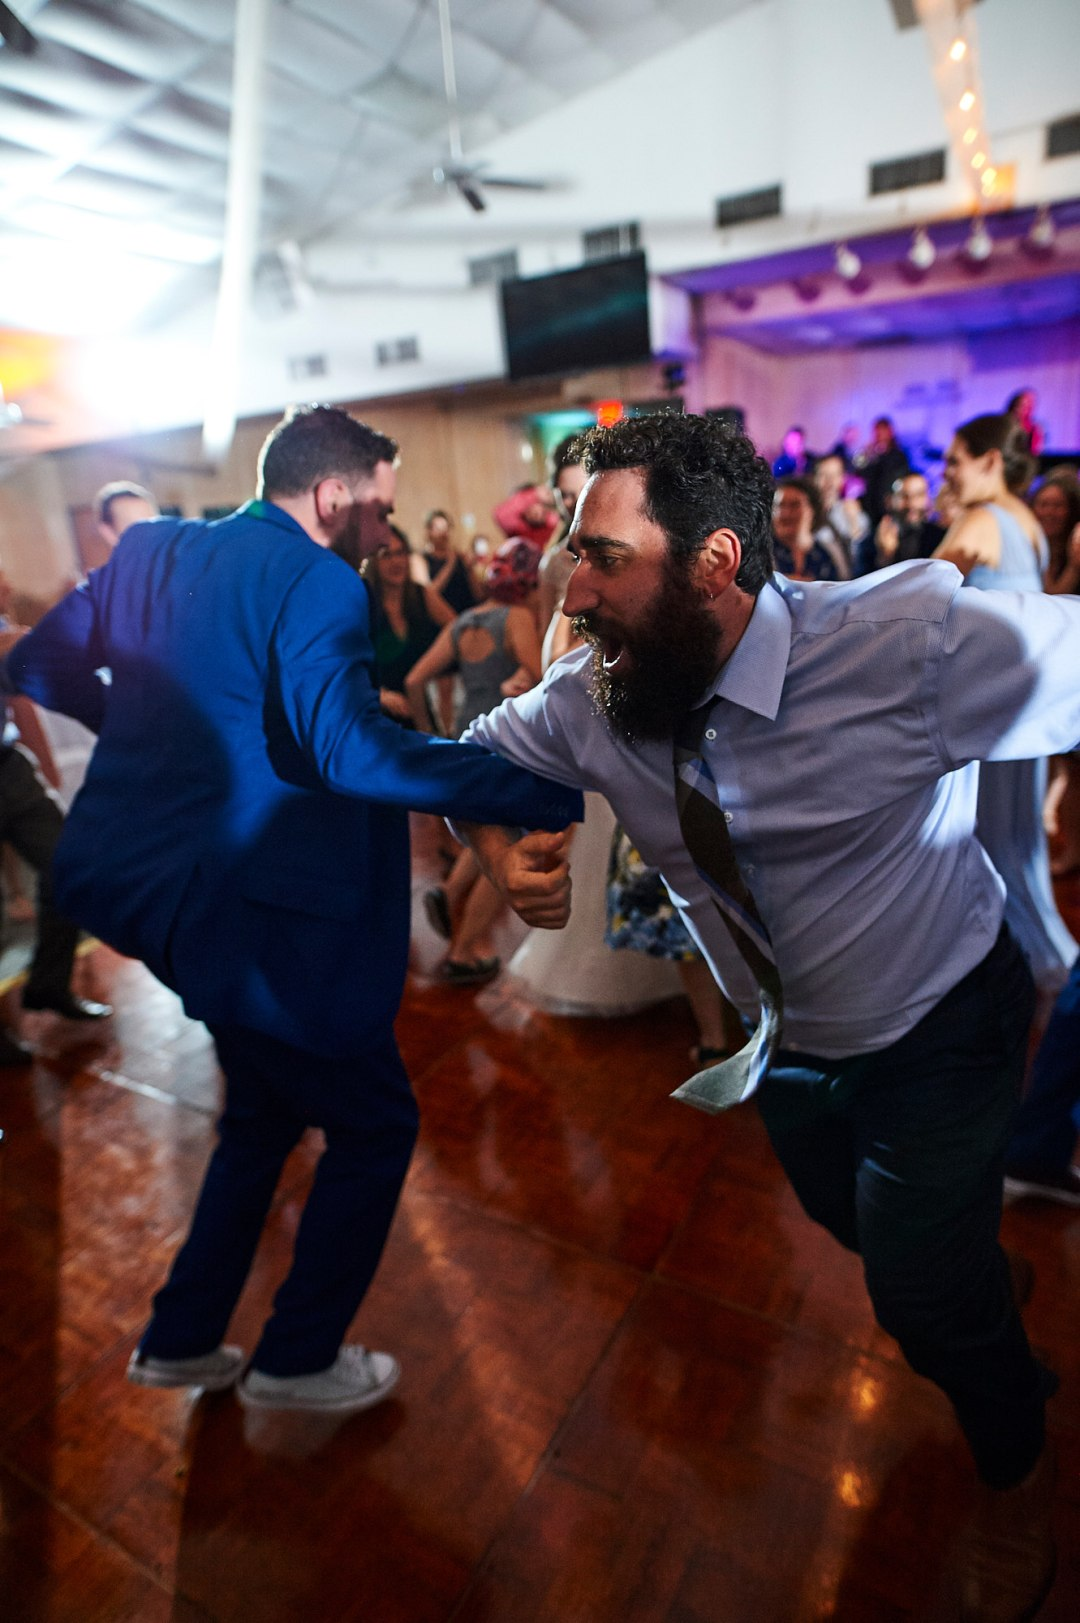 Partying at the Reception - Waco DIY Wedding - Temple Camp Wedding - Hallie and Jonathan - Green Family Camp - Outdoor Wedding